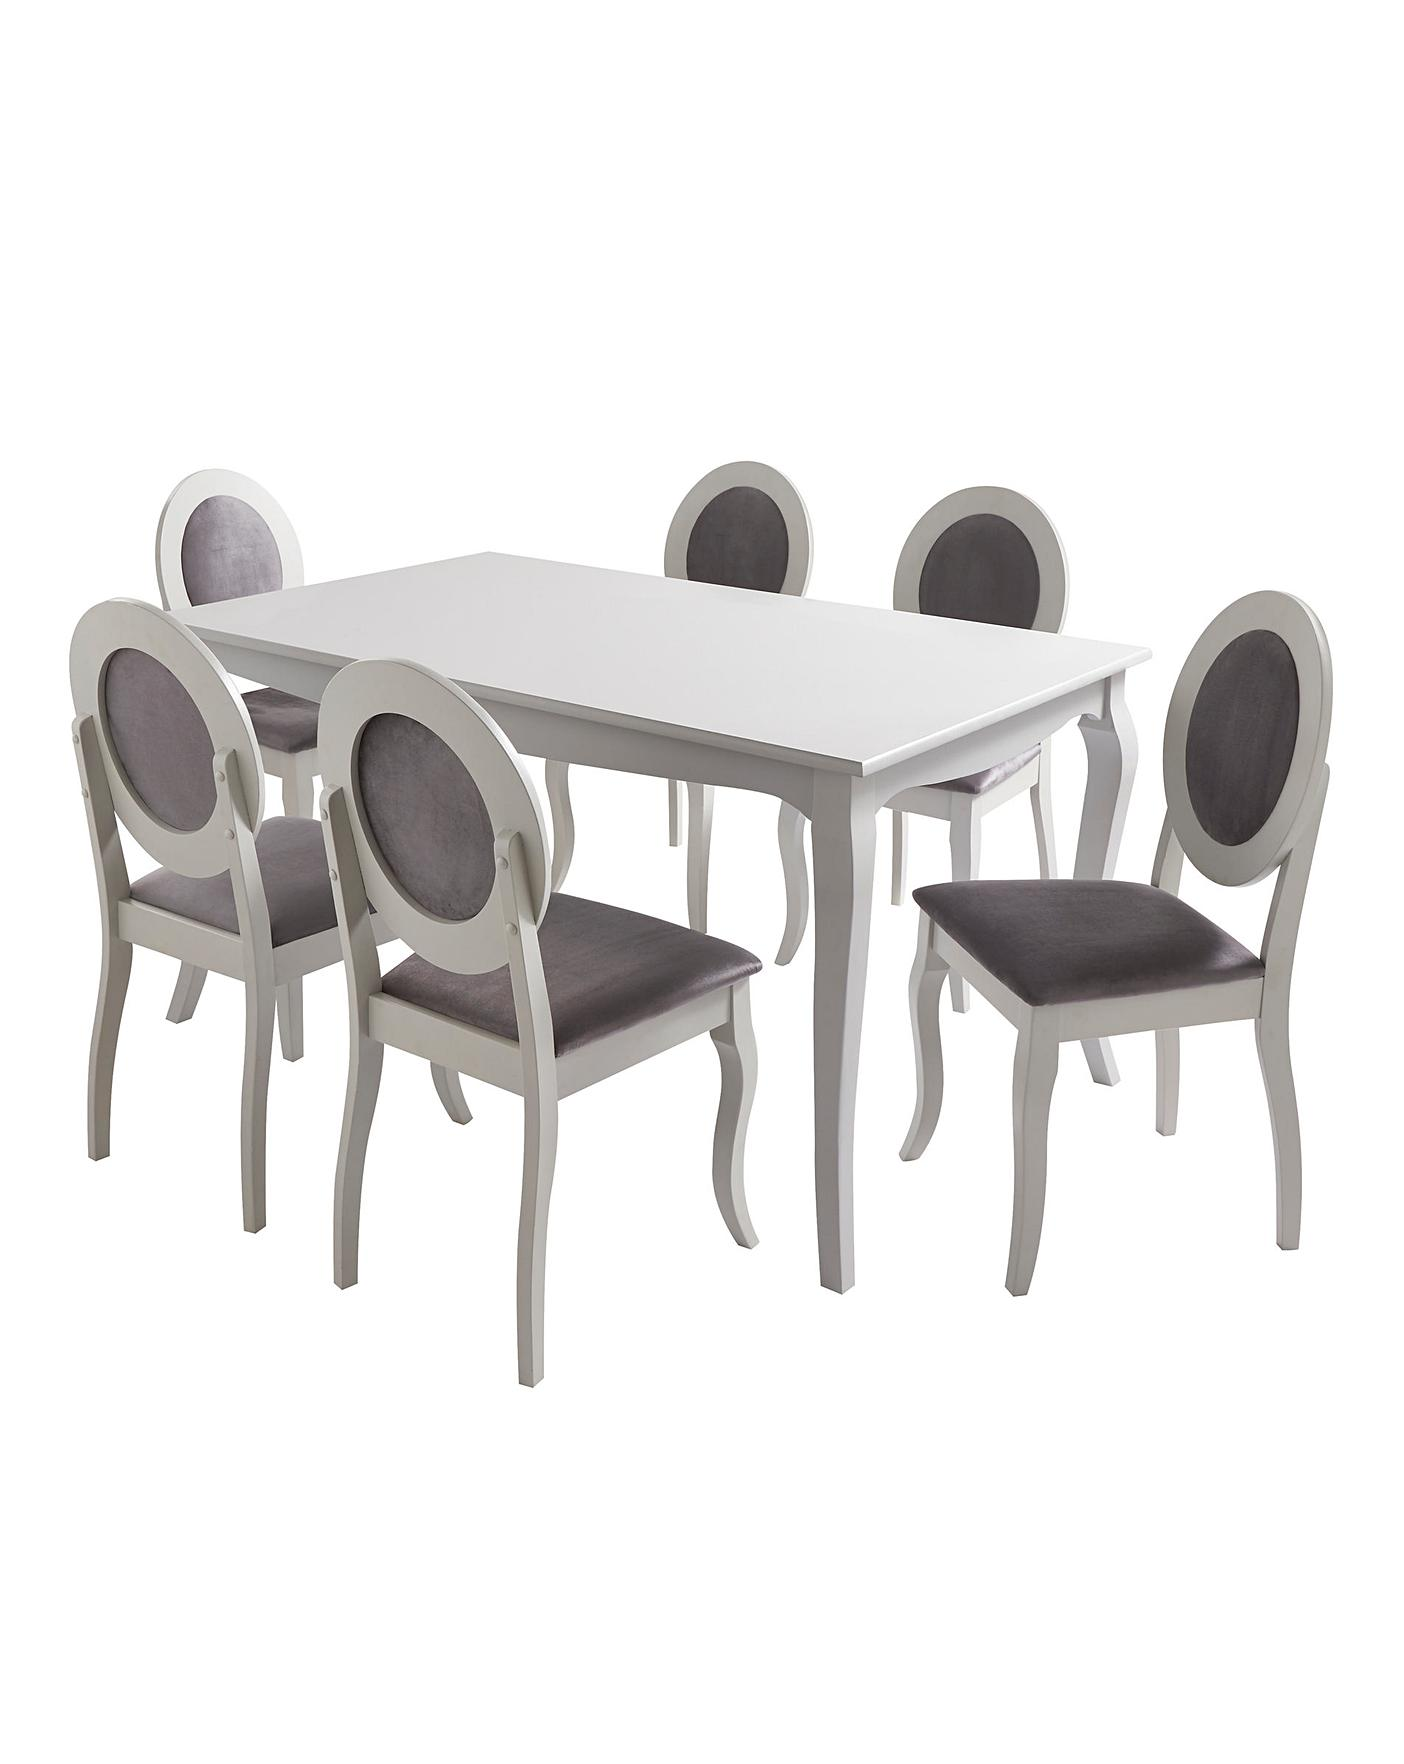 Elise Large Dining Table 6 Chairs